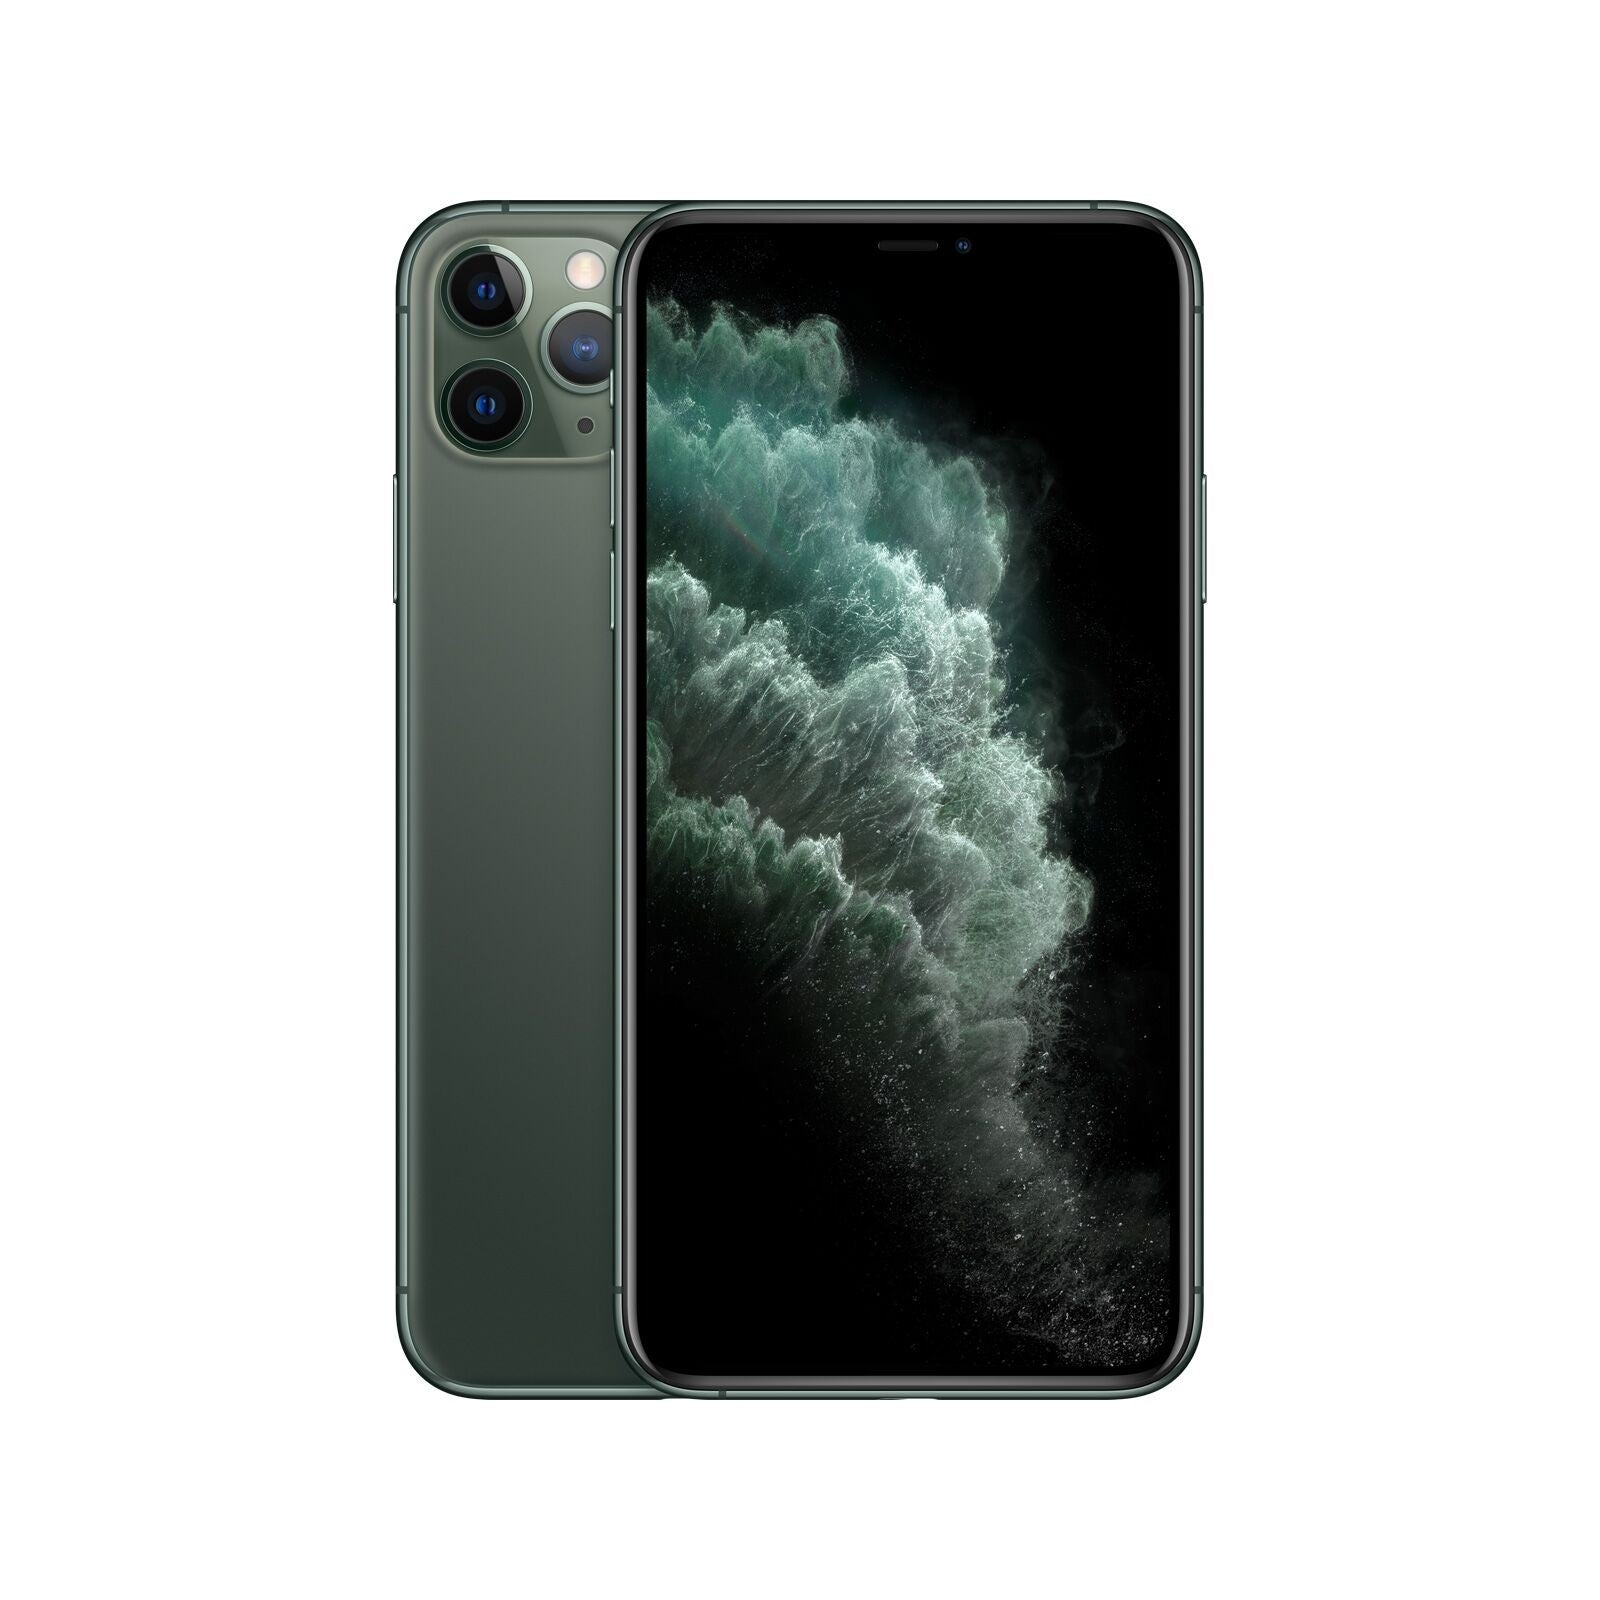 Apple iPhone 11 Pro Max (512GB, Midnight Green, Local Stock)-Smartphones (New)-Connected Devices